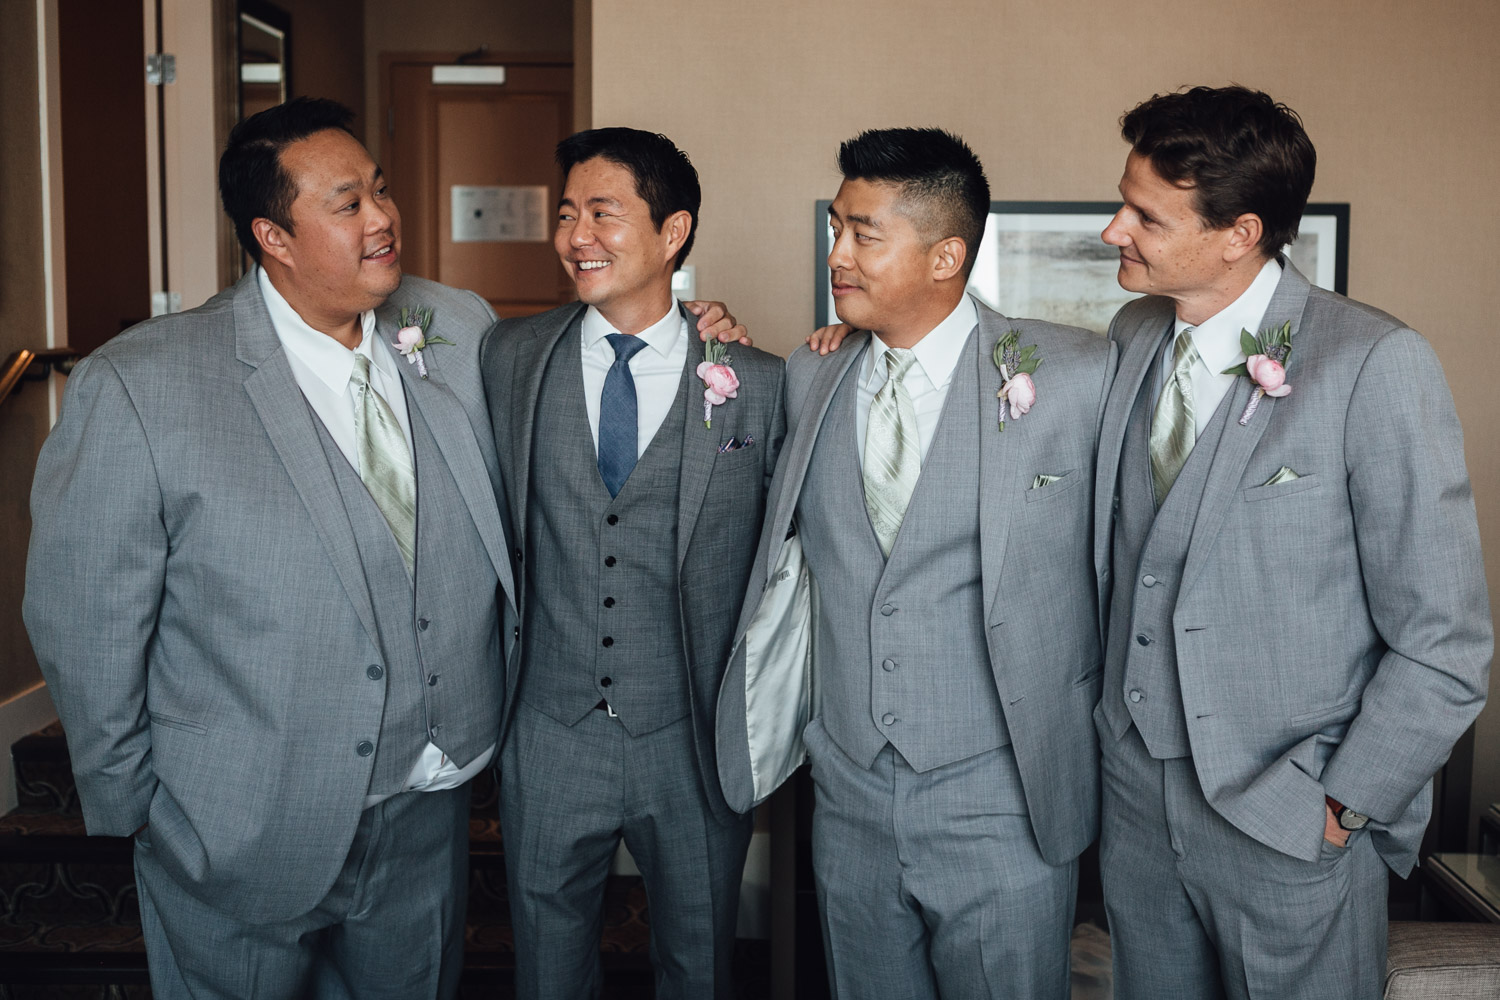 groomsmen and groom candid at river rock casino in richmond bc wedding photography